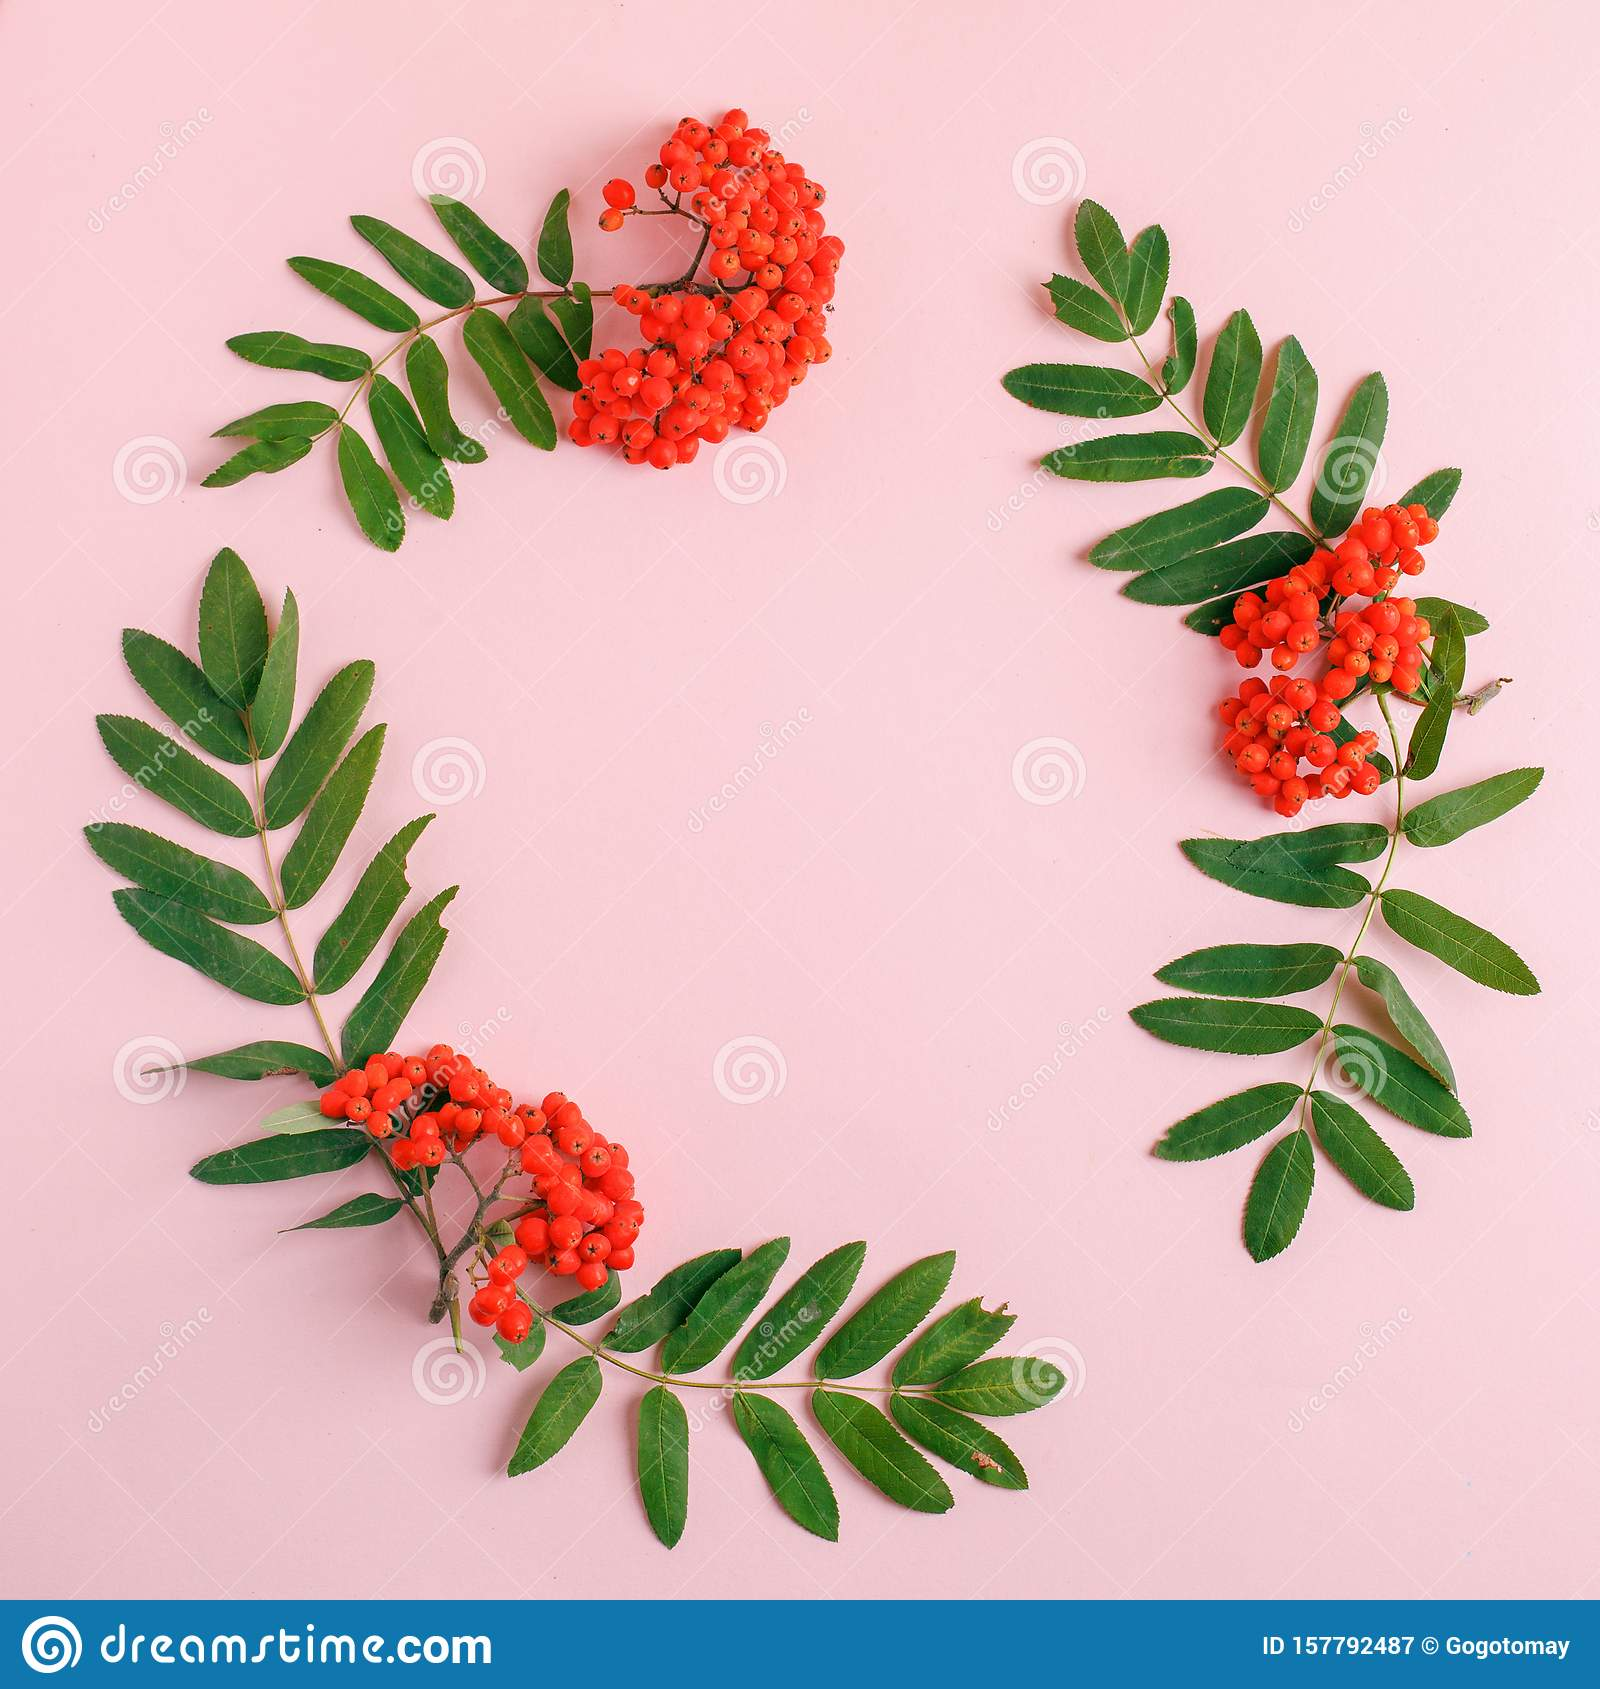 Autumn composition. Frame of leaves, rowan berries on a pink background. Fall background. Top view, copy space